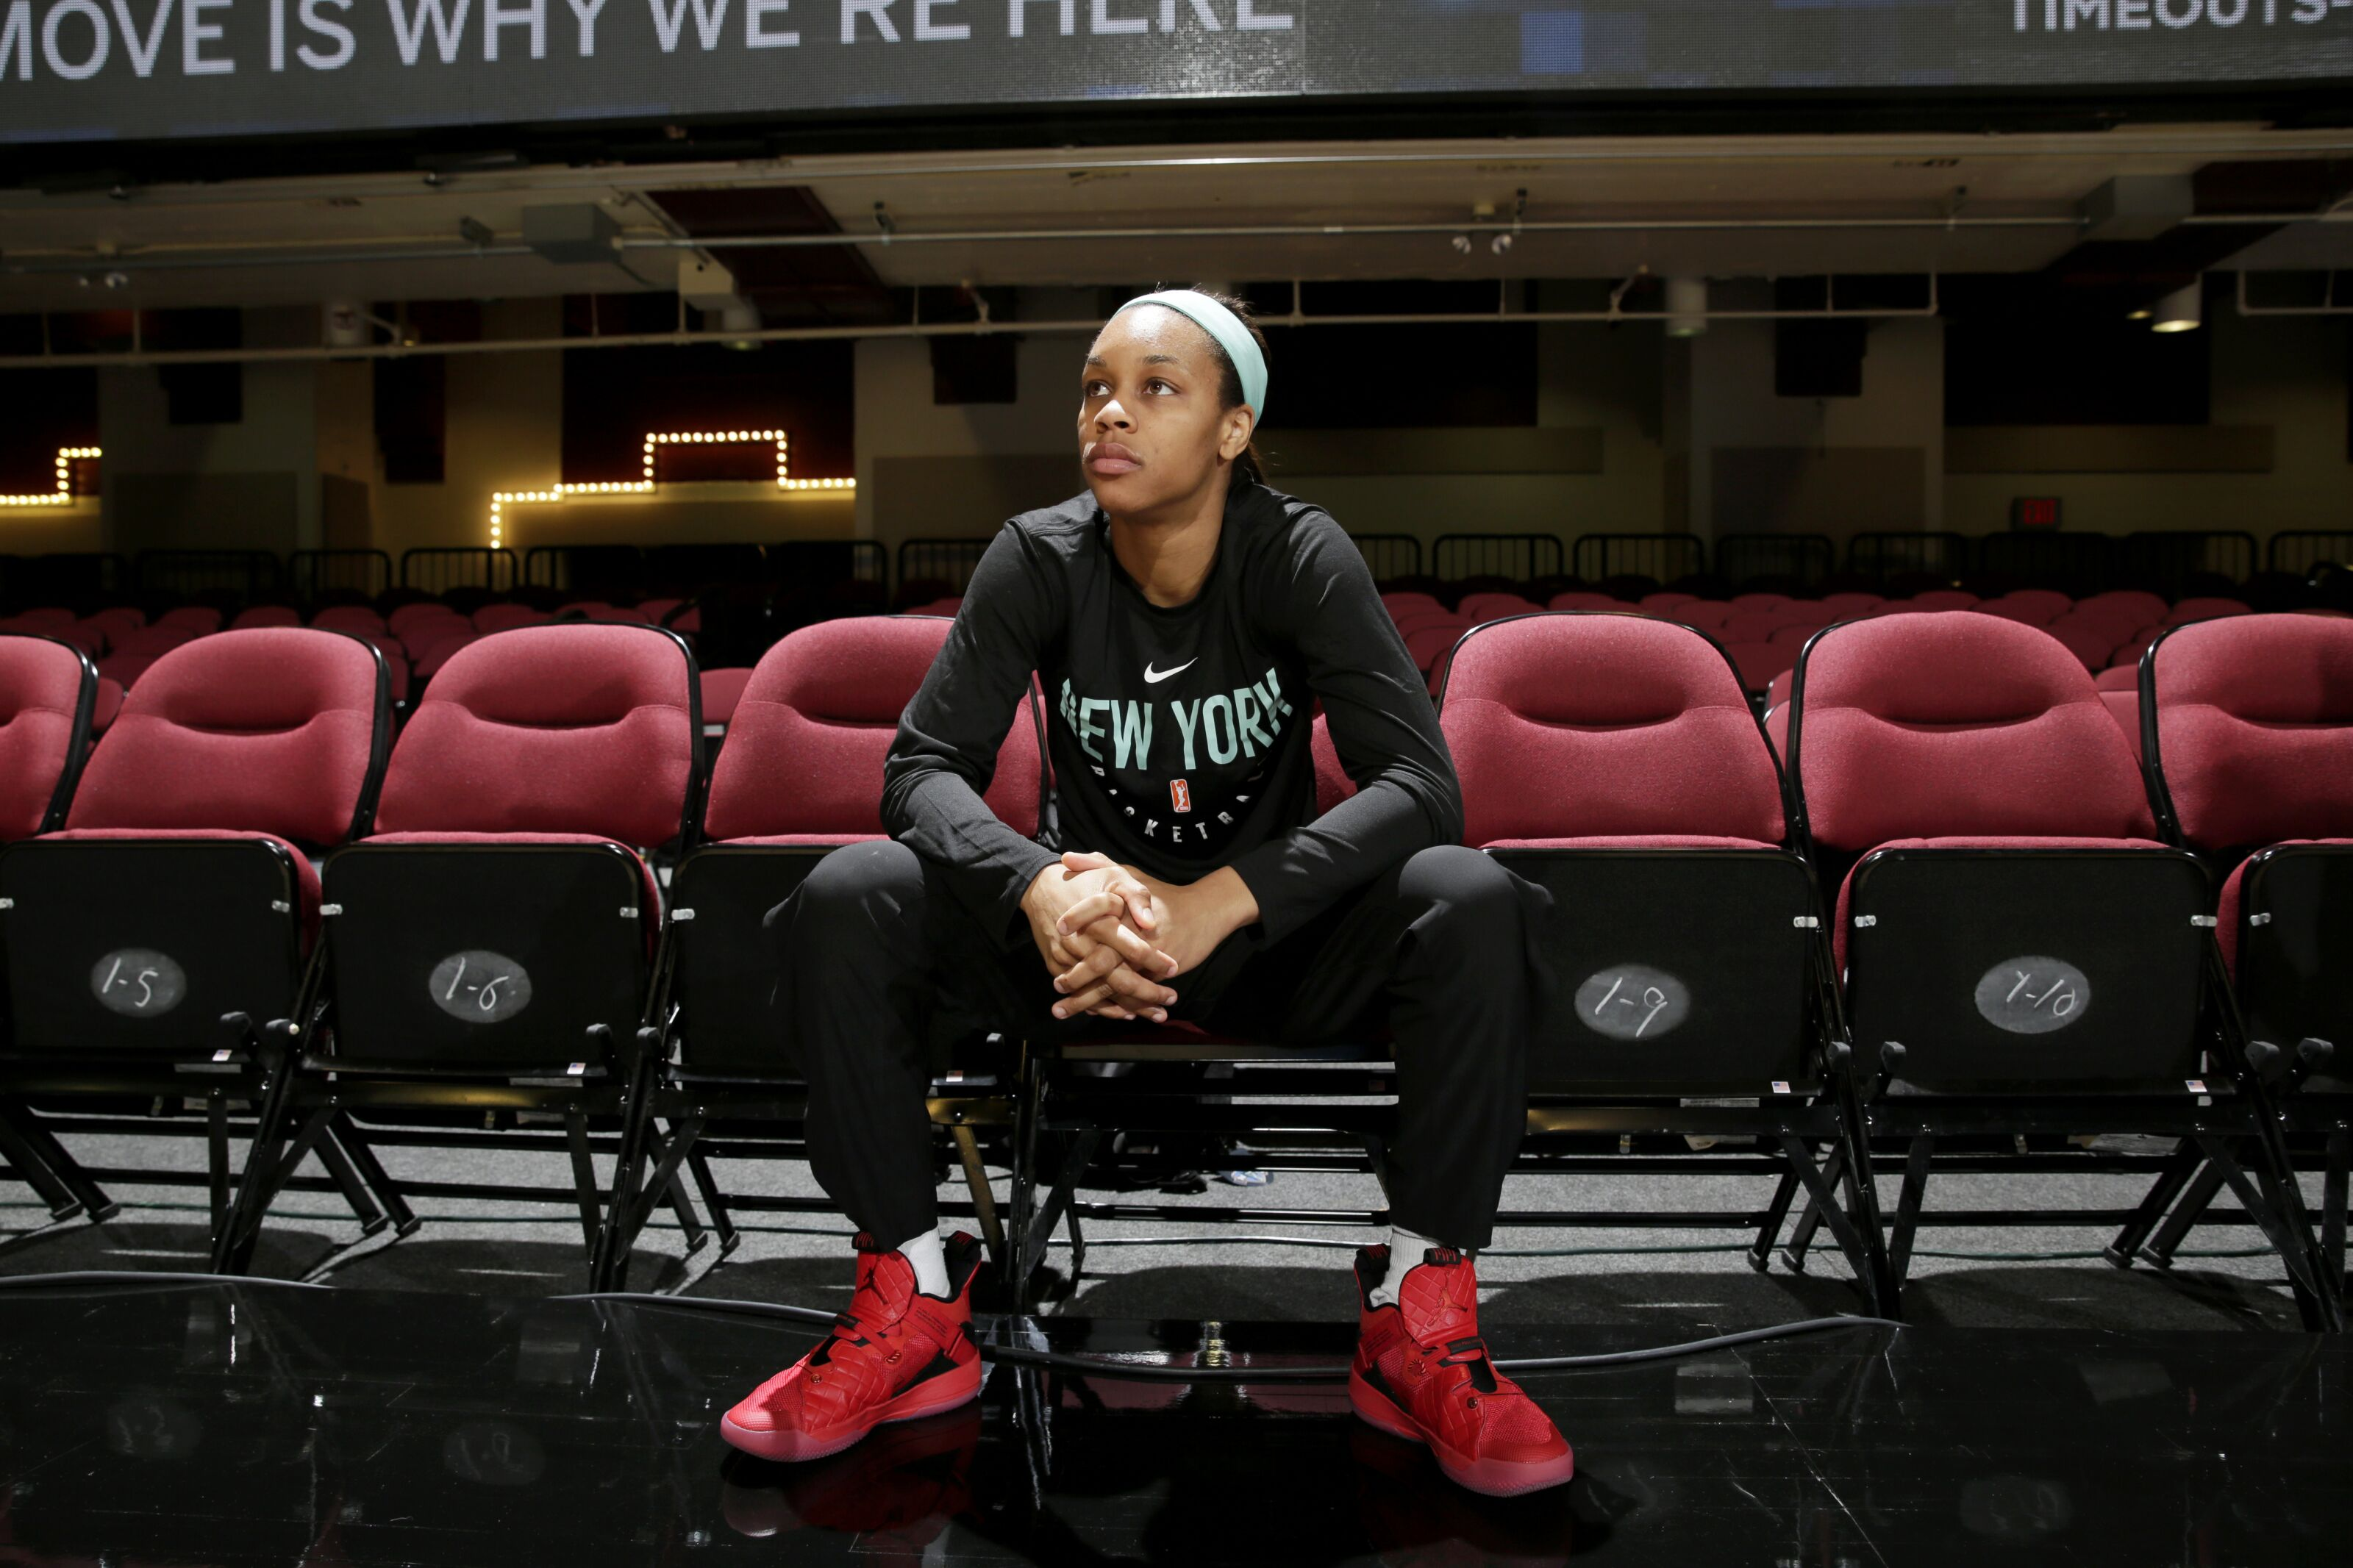 Asia Durr undergoes successful hip surgery in preparation for 2020 return